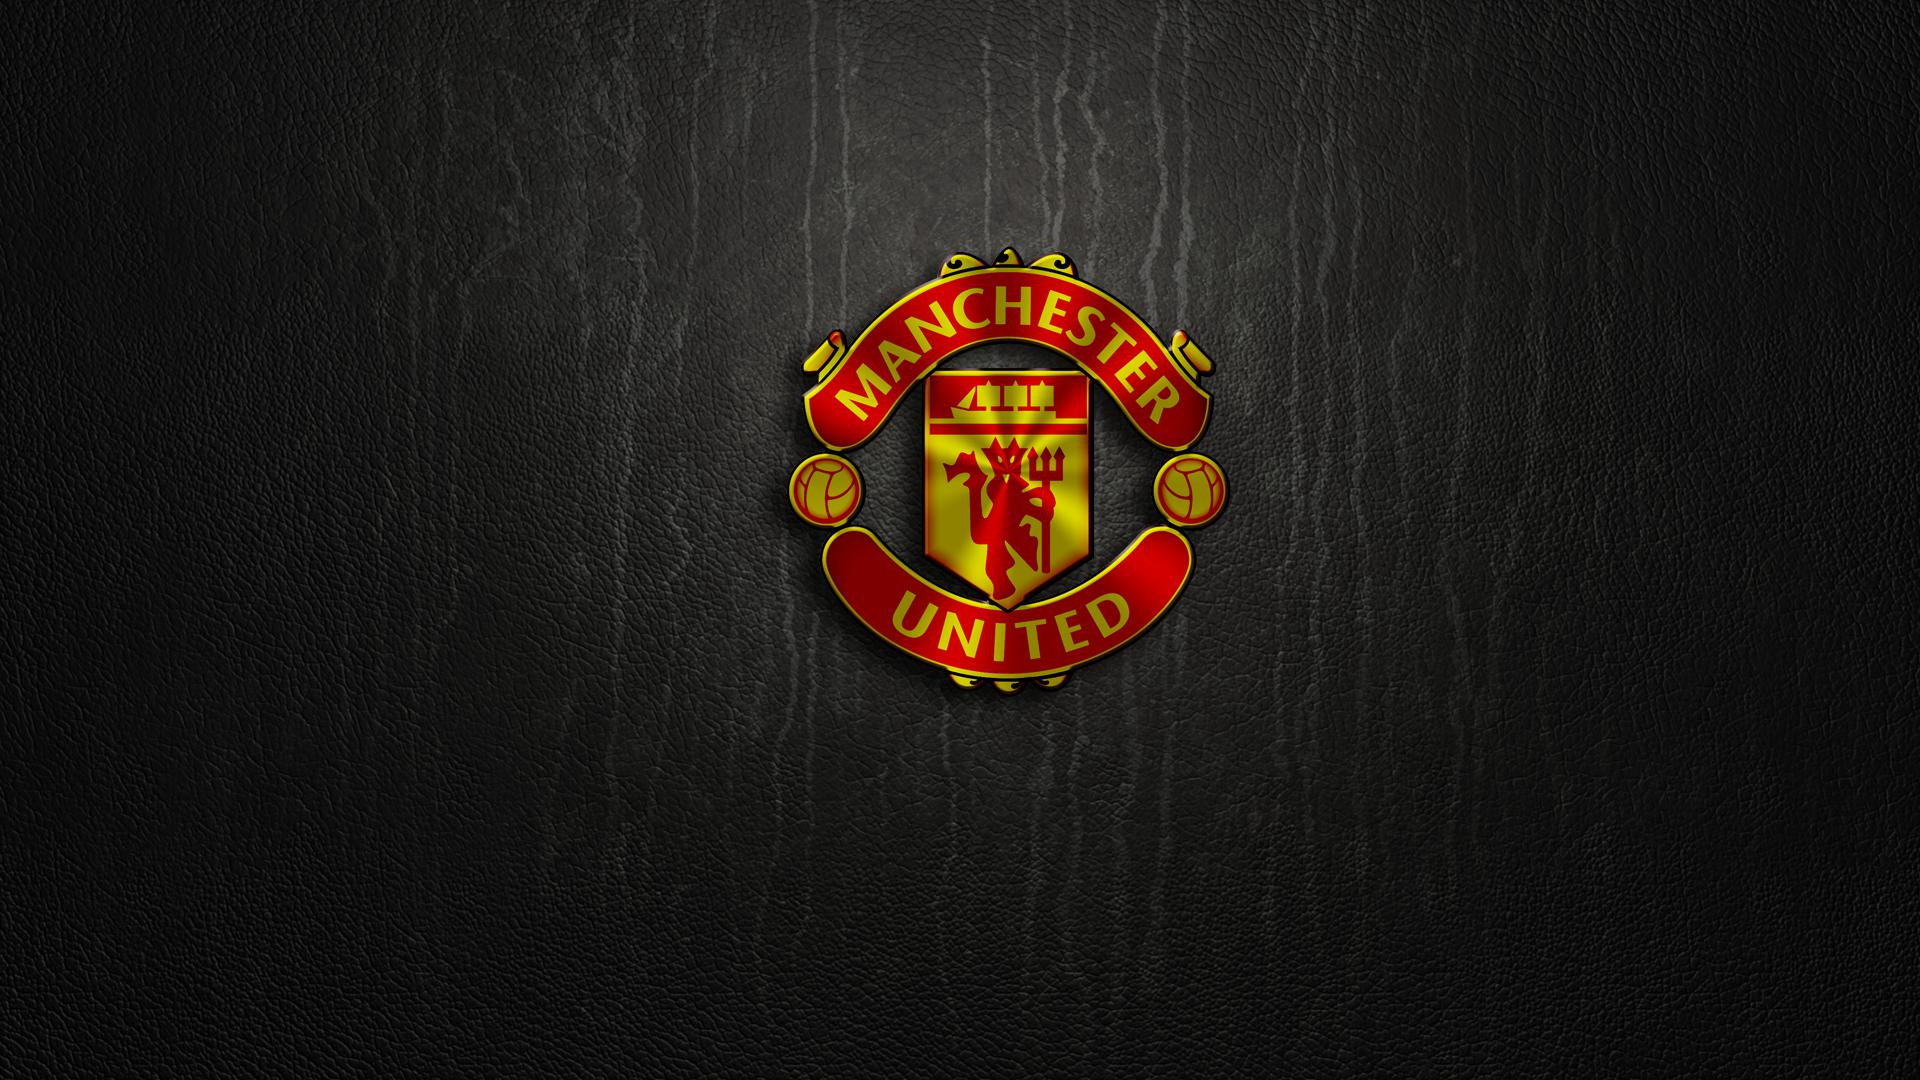 Man Utd Logo Wallpaper